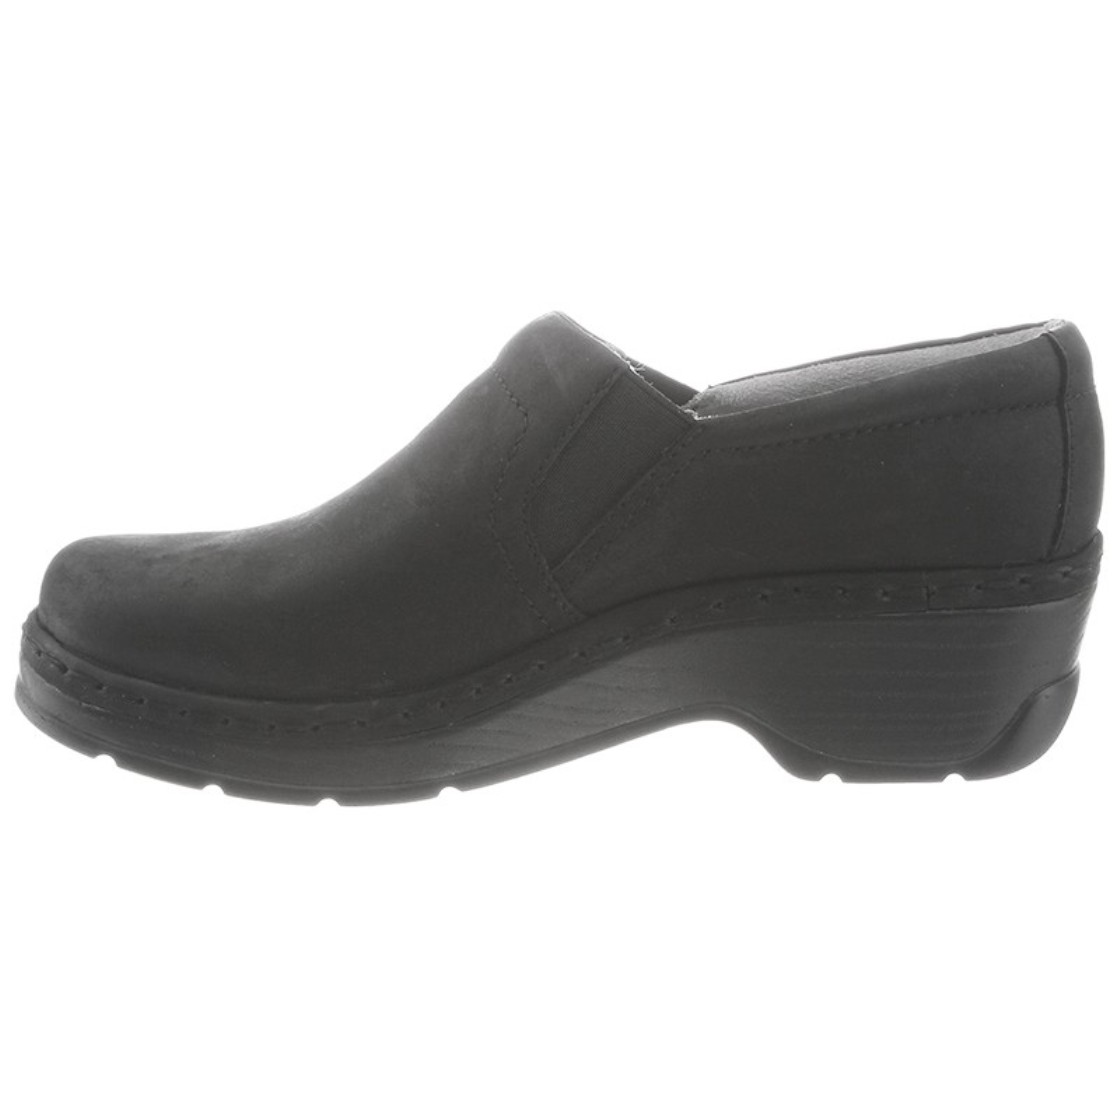 Klogs Naples Mens Womens Clogs Black Smooth by Latitudes Inc.